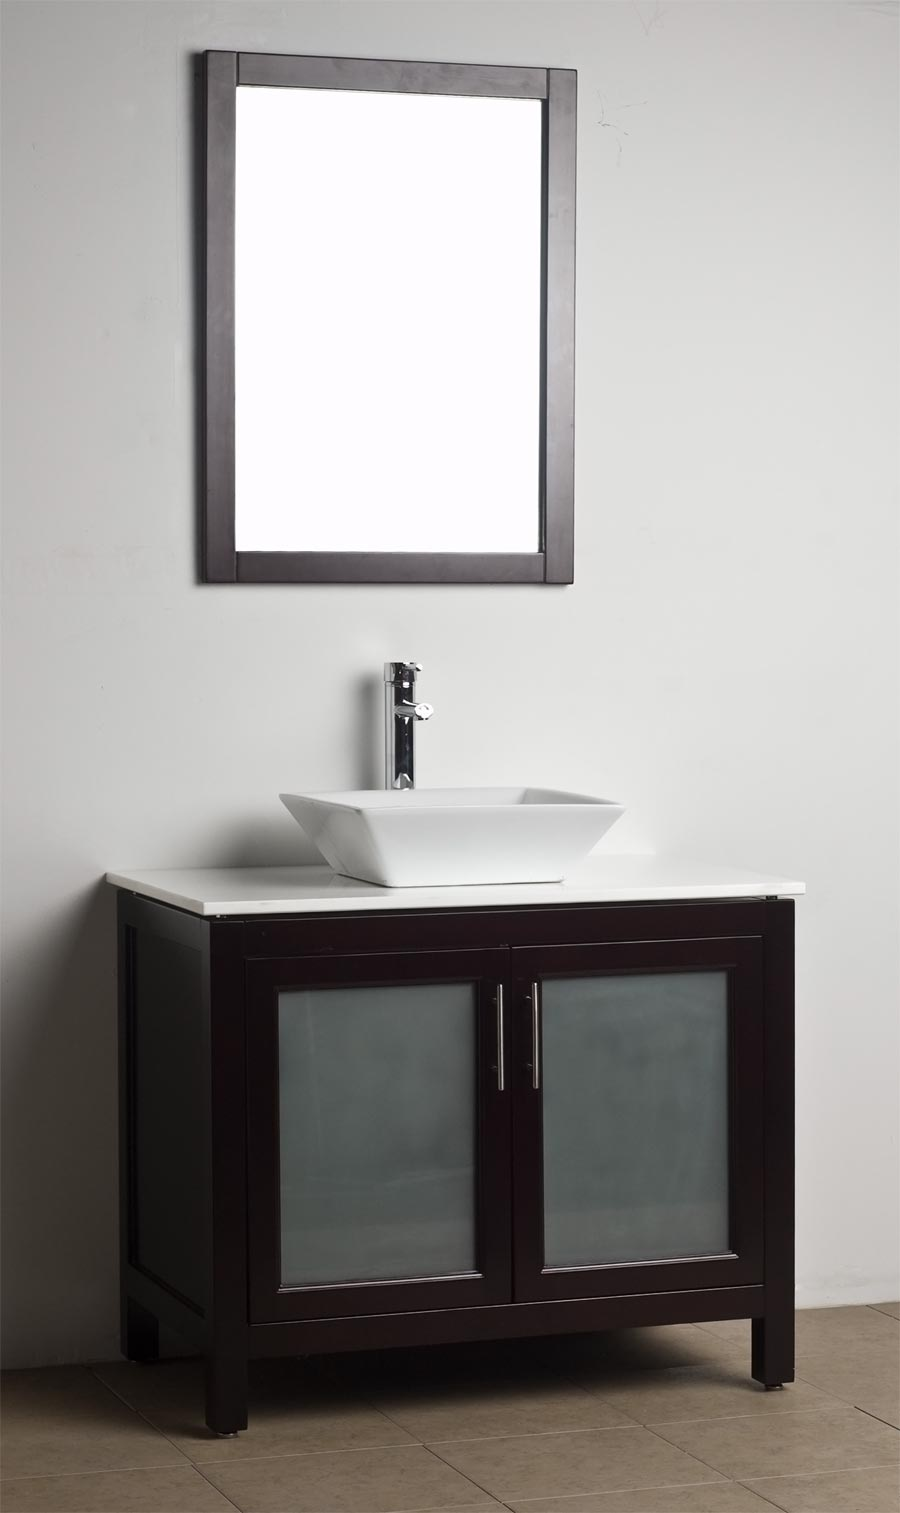 Dark Wood Bathroom Vanity. 35 5 Solid Wood Bathroom Vanity Set Dark Espresso Wh 0908 5